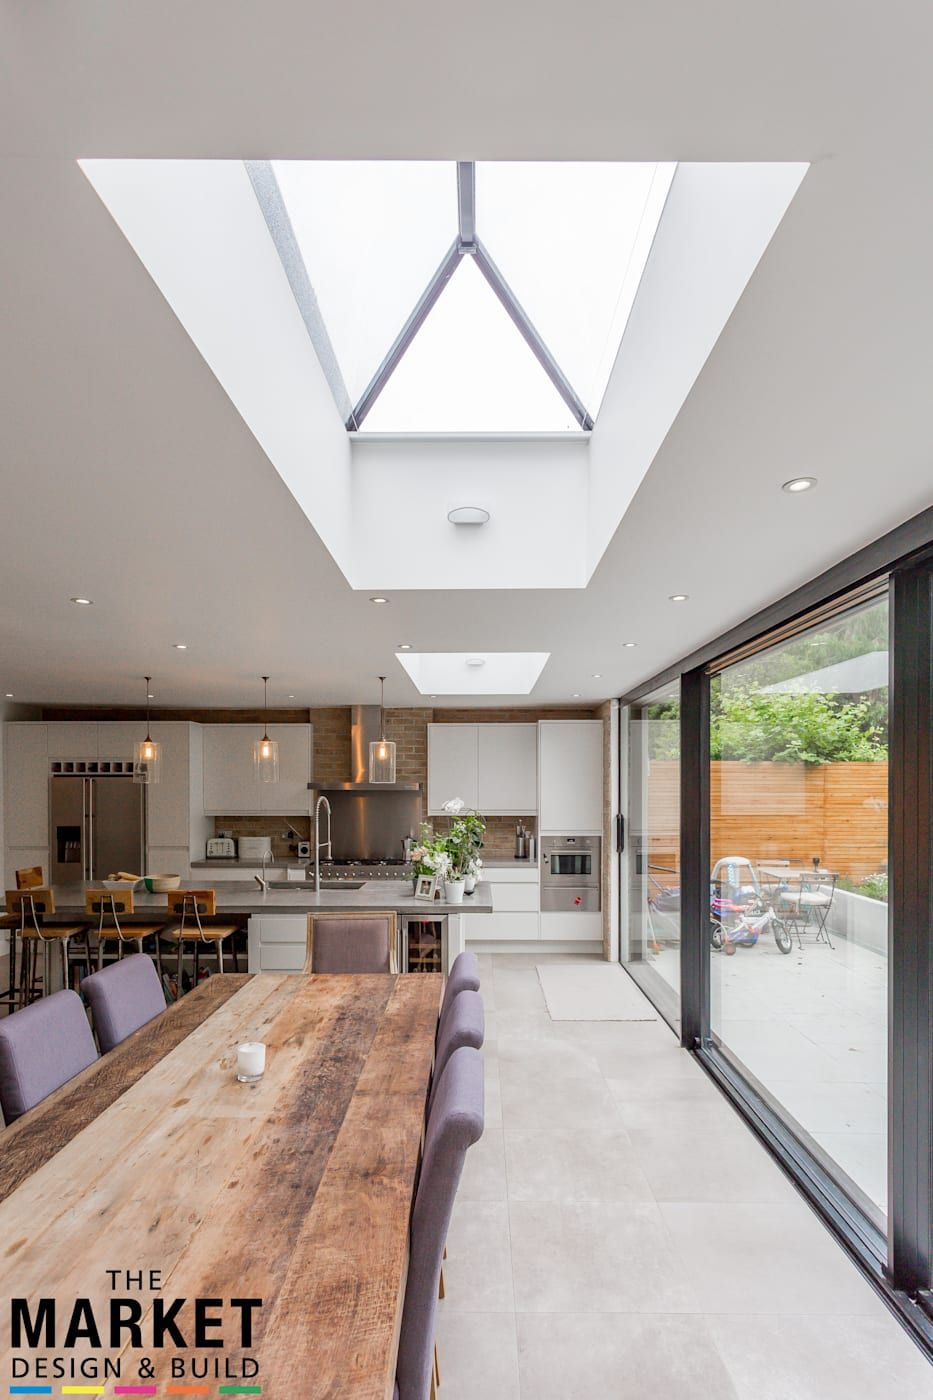 7 Stunning Home Extension Ideas: Stunning North London Home Extension And Loft Conversion Modern Dining Room By The Market Design